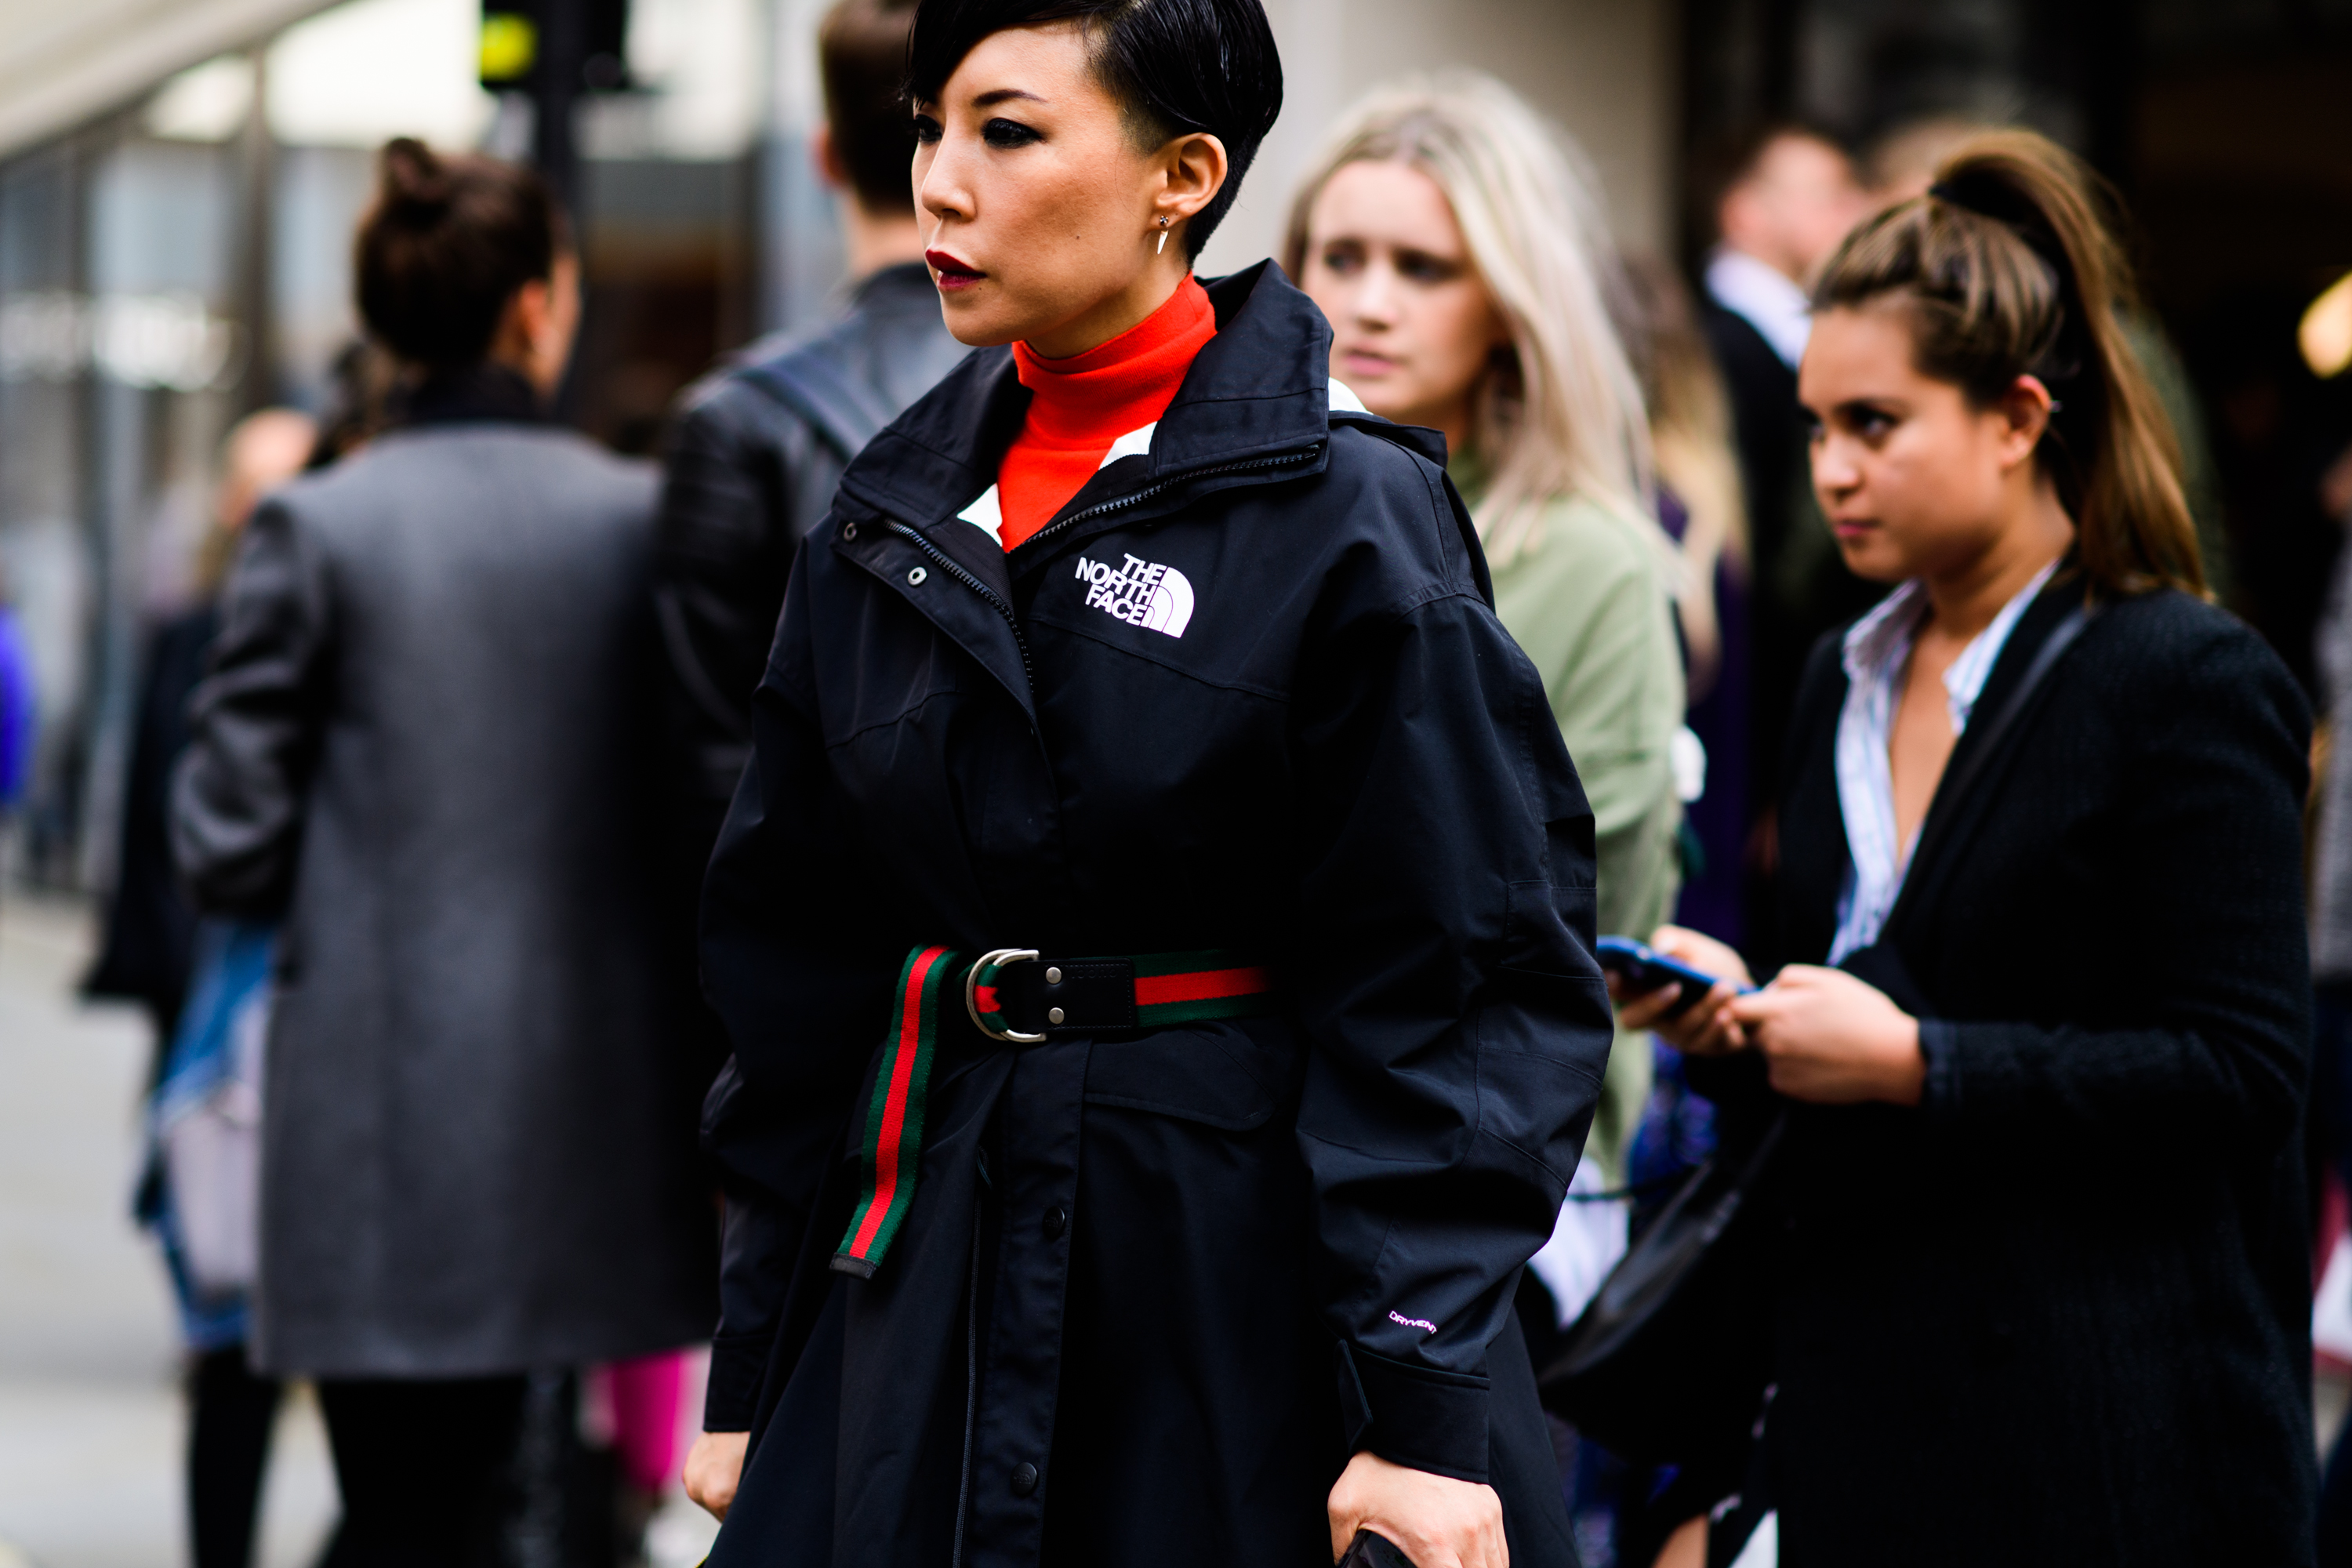 london-lfw-street-style-ss18-day-1-tyler-joe-139-1505753307